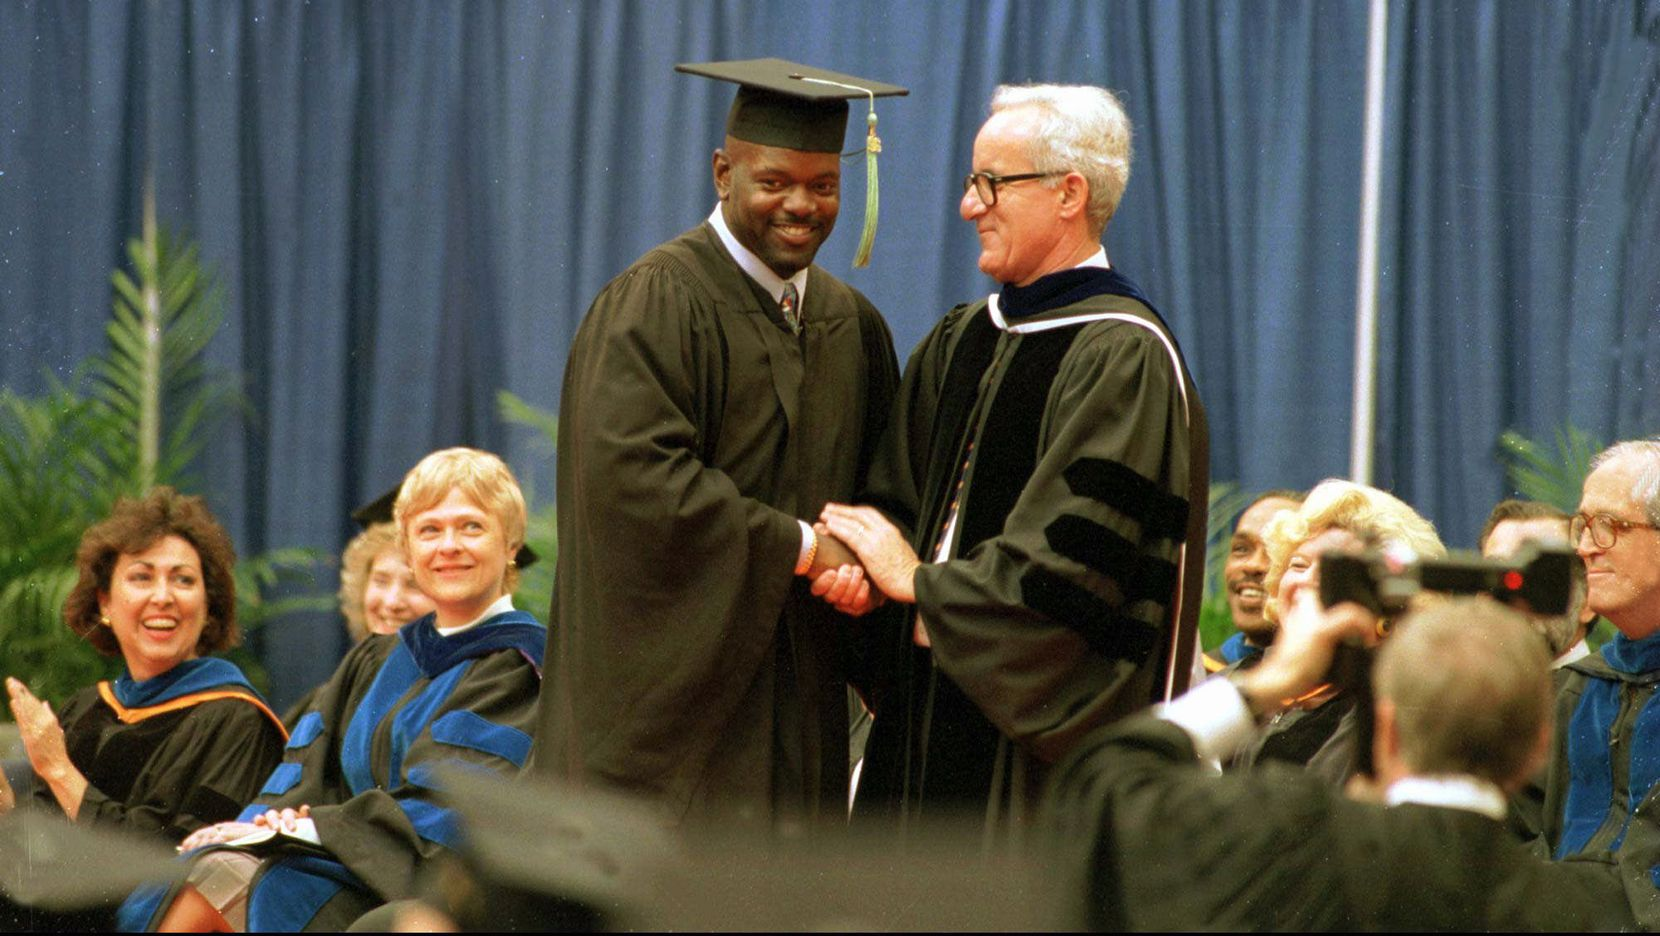 Cowboys running back Emmitt Smith is congratulated by University  of Florida President John Lombardi during one of two commencement  ceremonies on the Gainesville campus Saturday, May 4, 1996. Smith,  who received a bachelor of science in recreation, left college for the National Football League before his senior season in 1990  but vowed to his family he would return and earn his degree. (AP  Photo/University of Florida, Jeff Gage, HO)